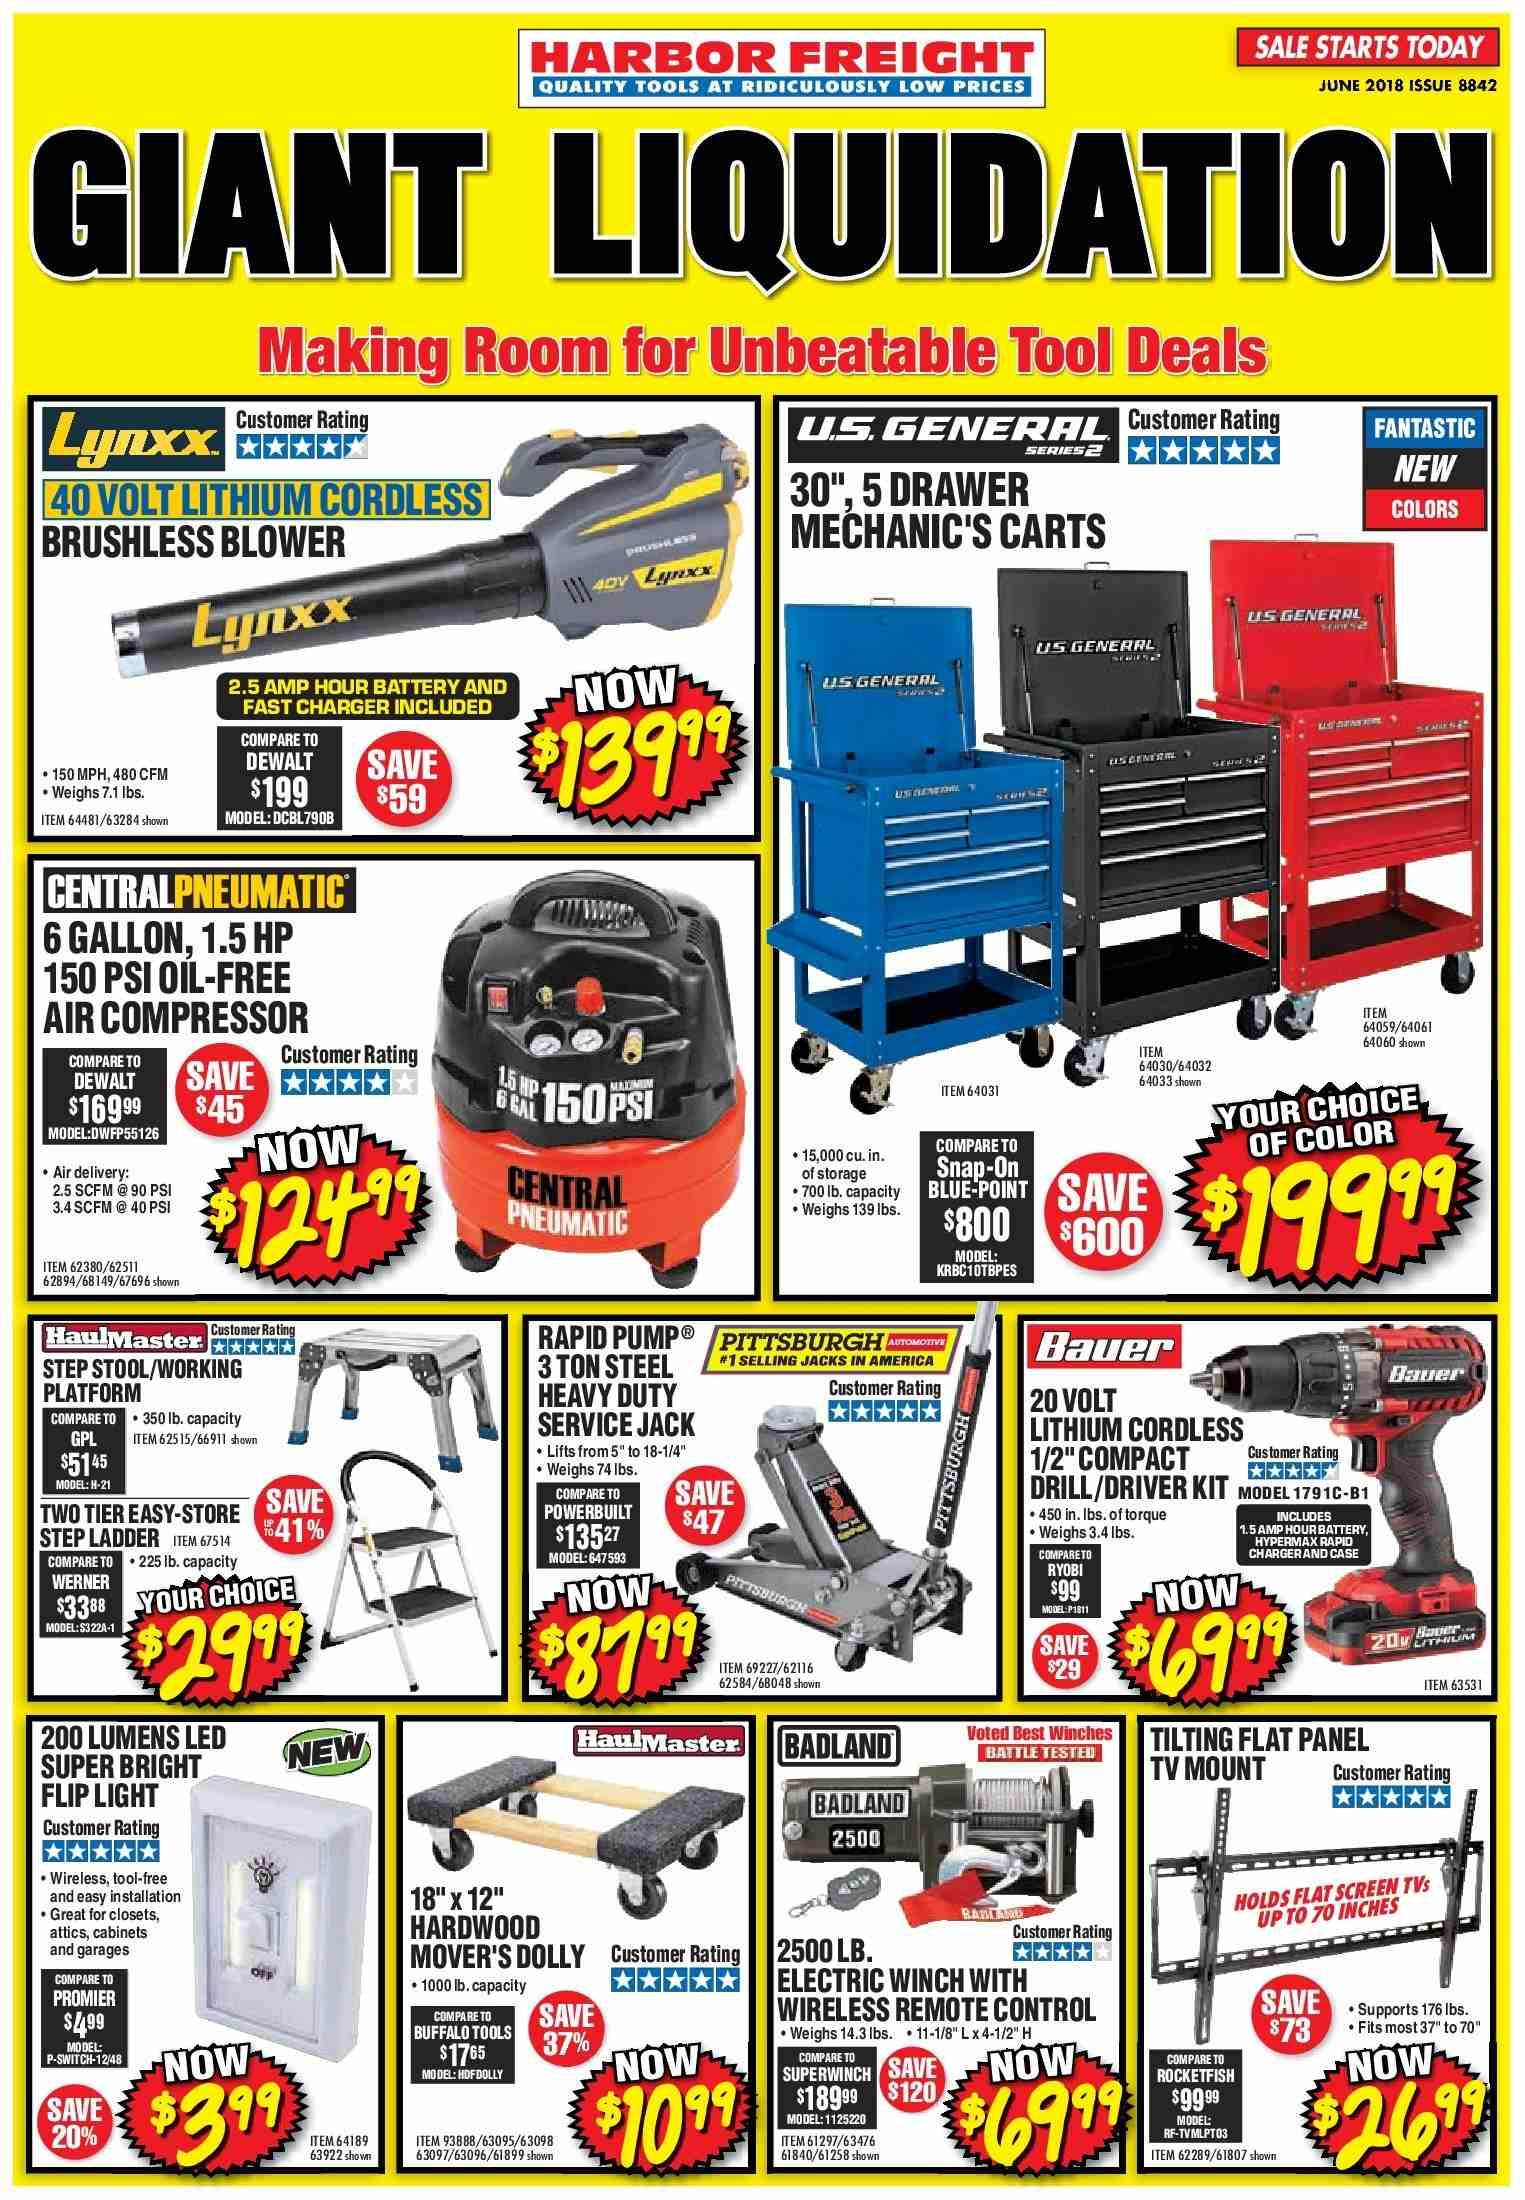 Harbor Freight Flyer  - 06.01.2018 - 06.30.2018. Page 1.